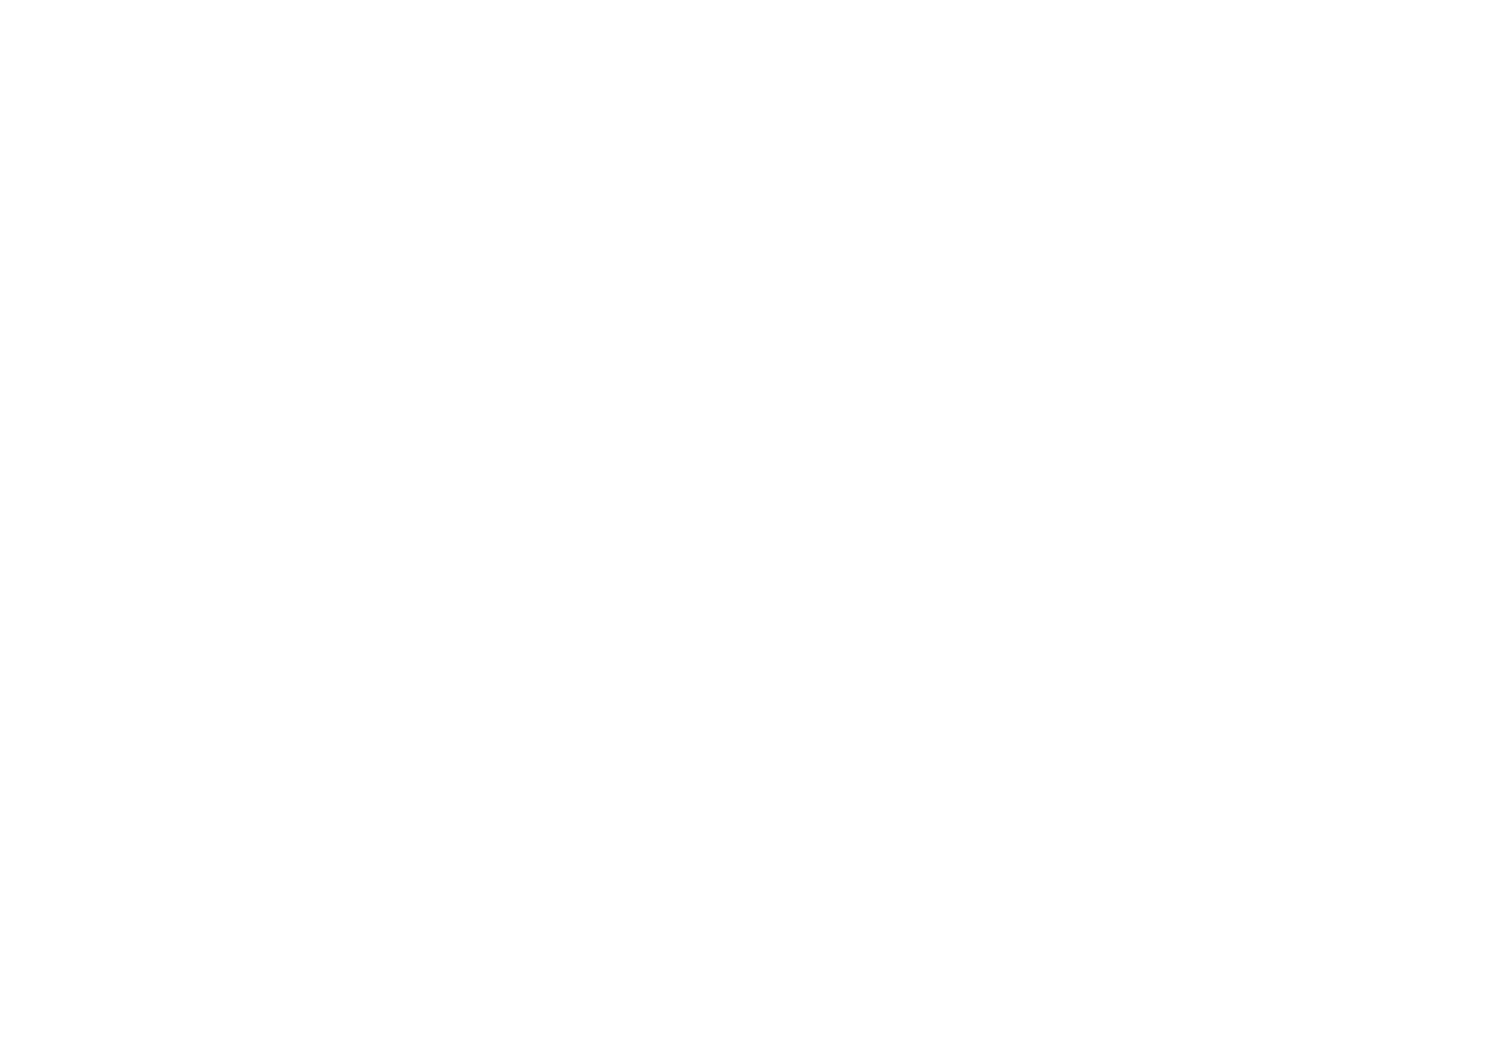 Ross Thompson Furniture